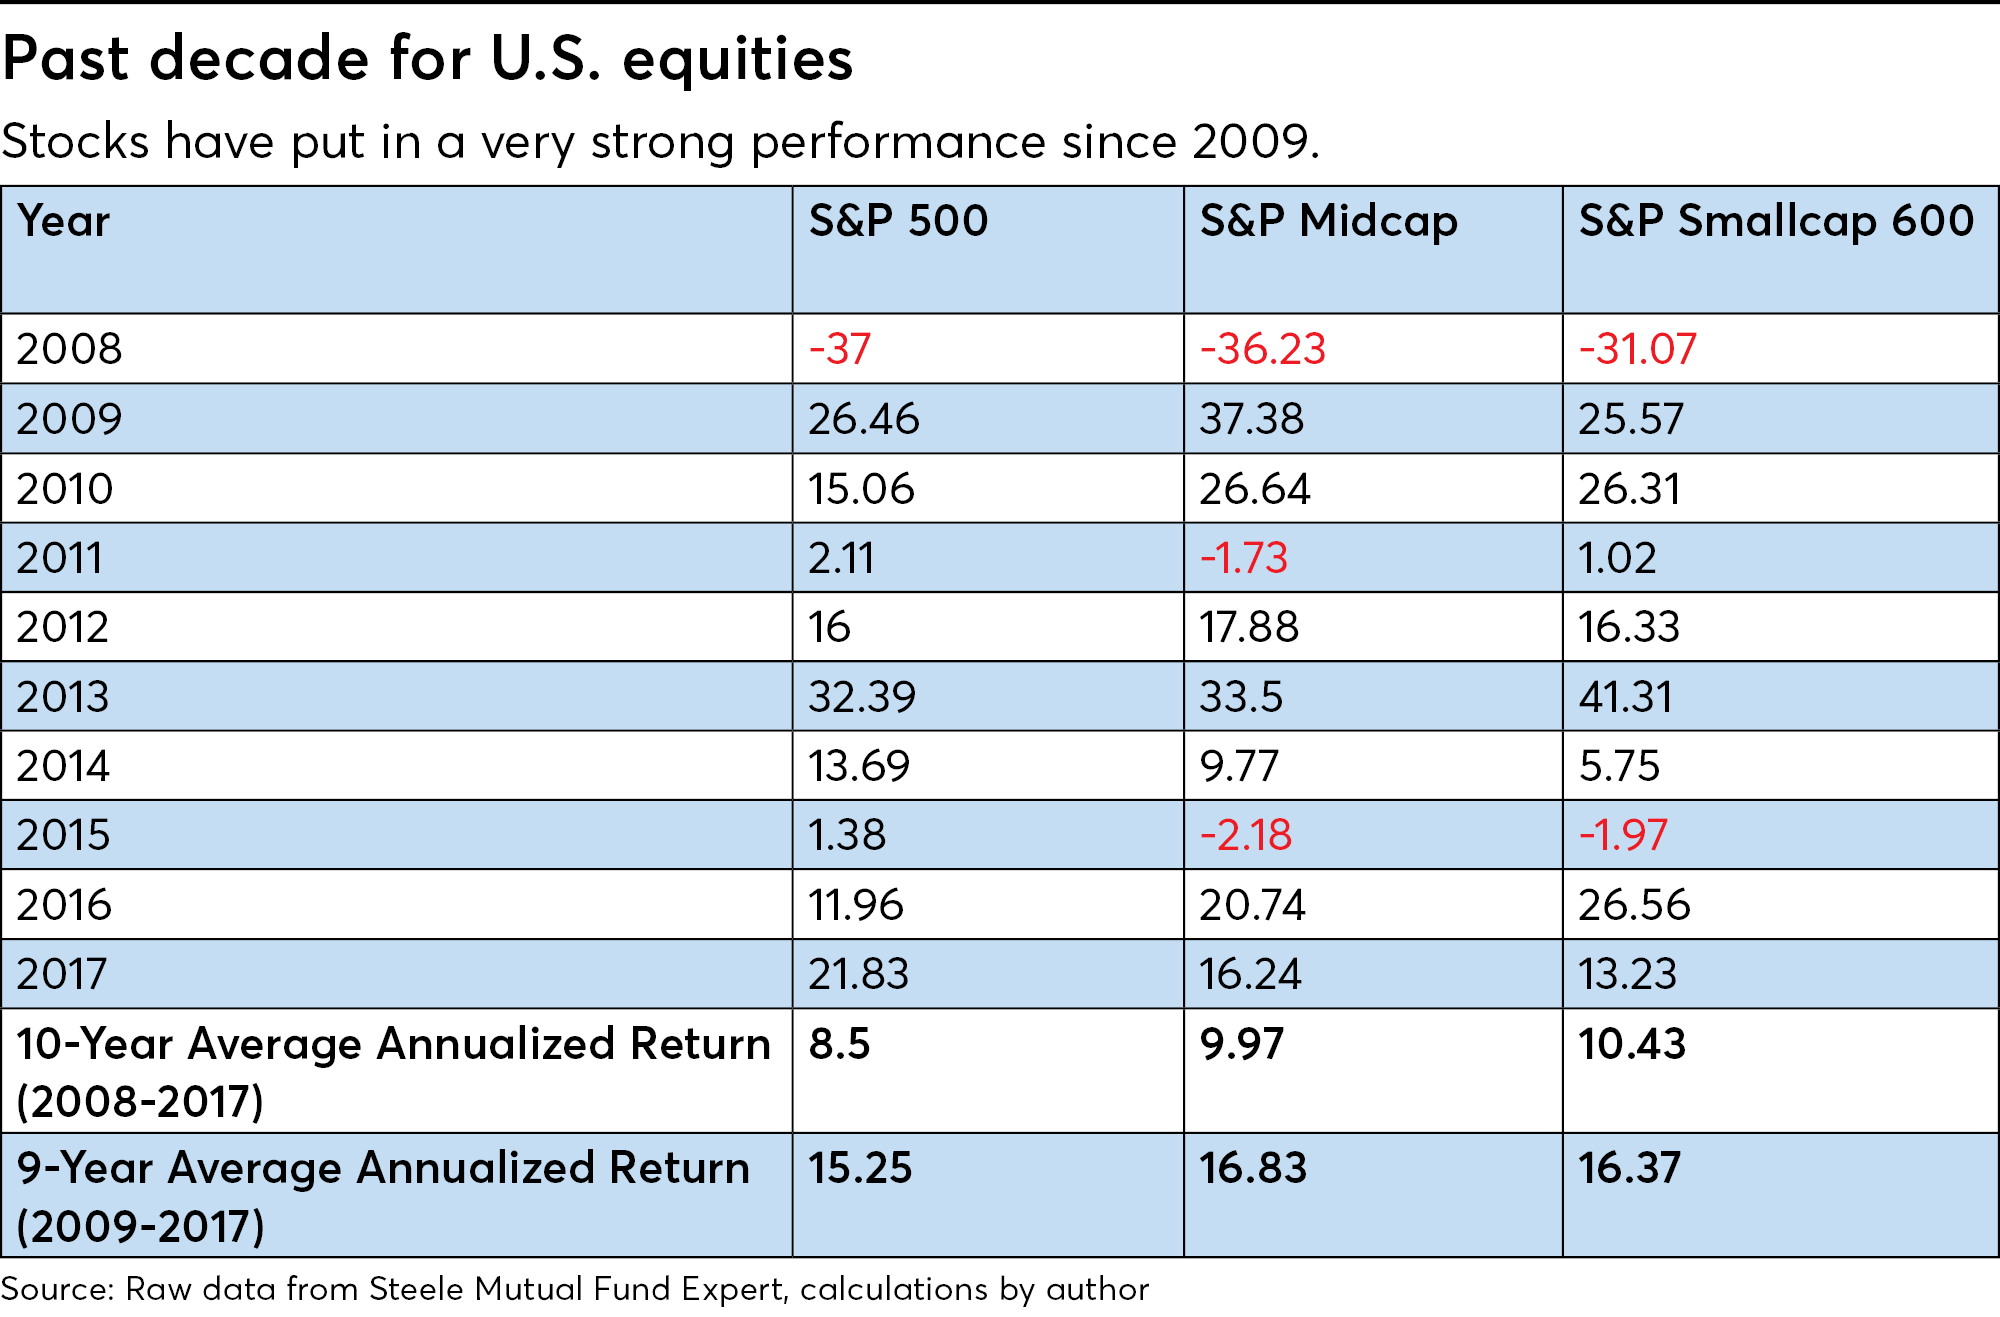 https://assets.sourcemedia.com/75/f2/4465a3d14a6a8494645c03afe696/fp0718-past-decade-for-u.S.%20equities_HP.png